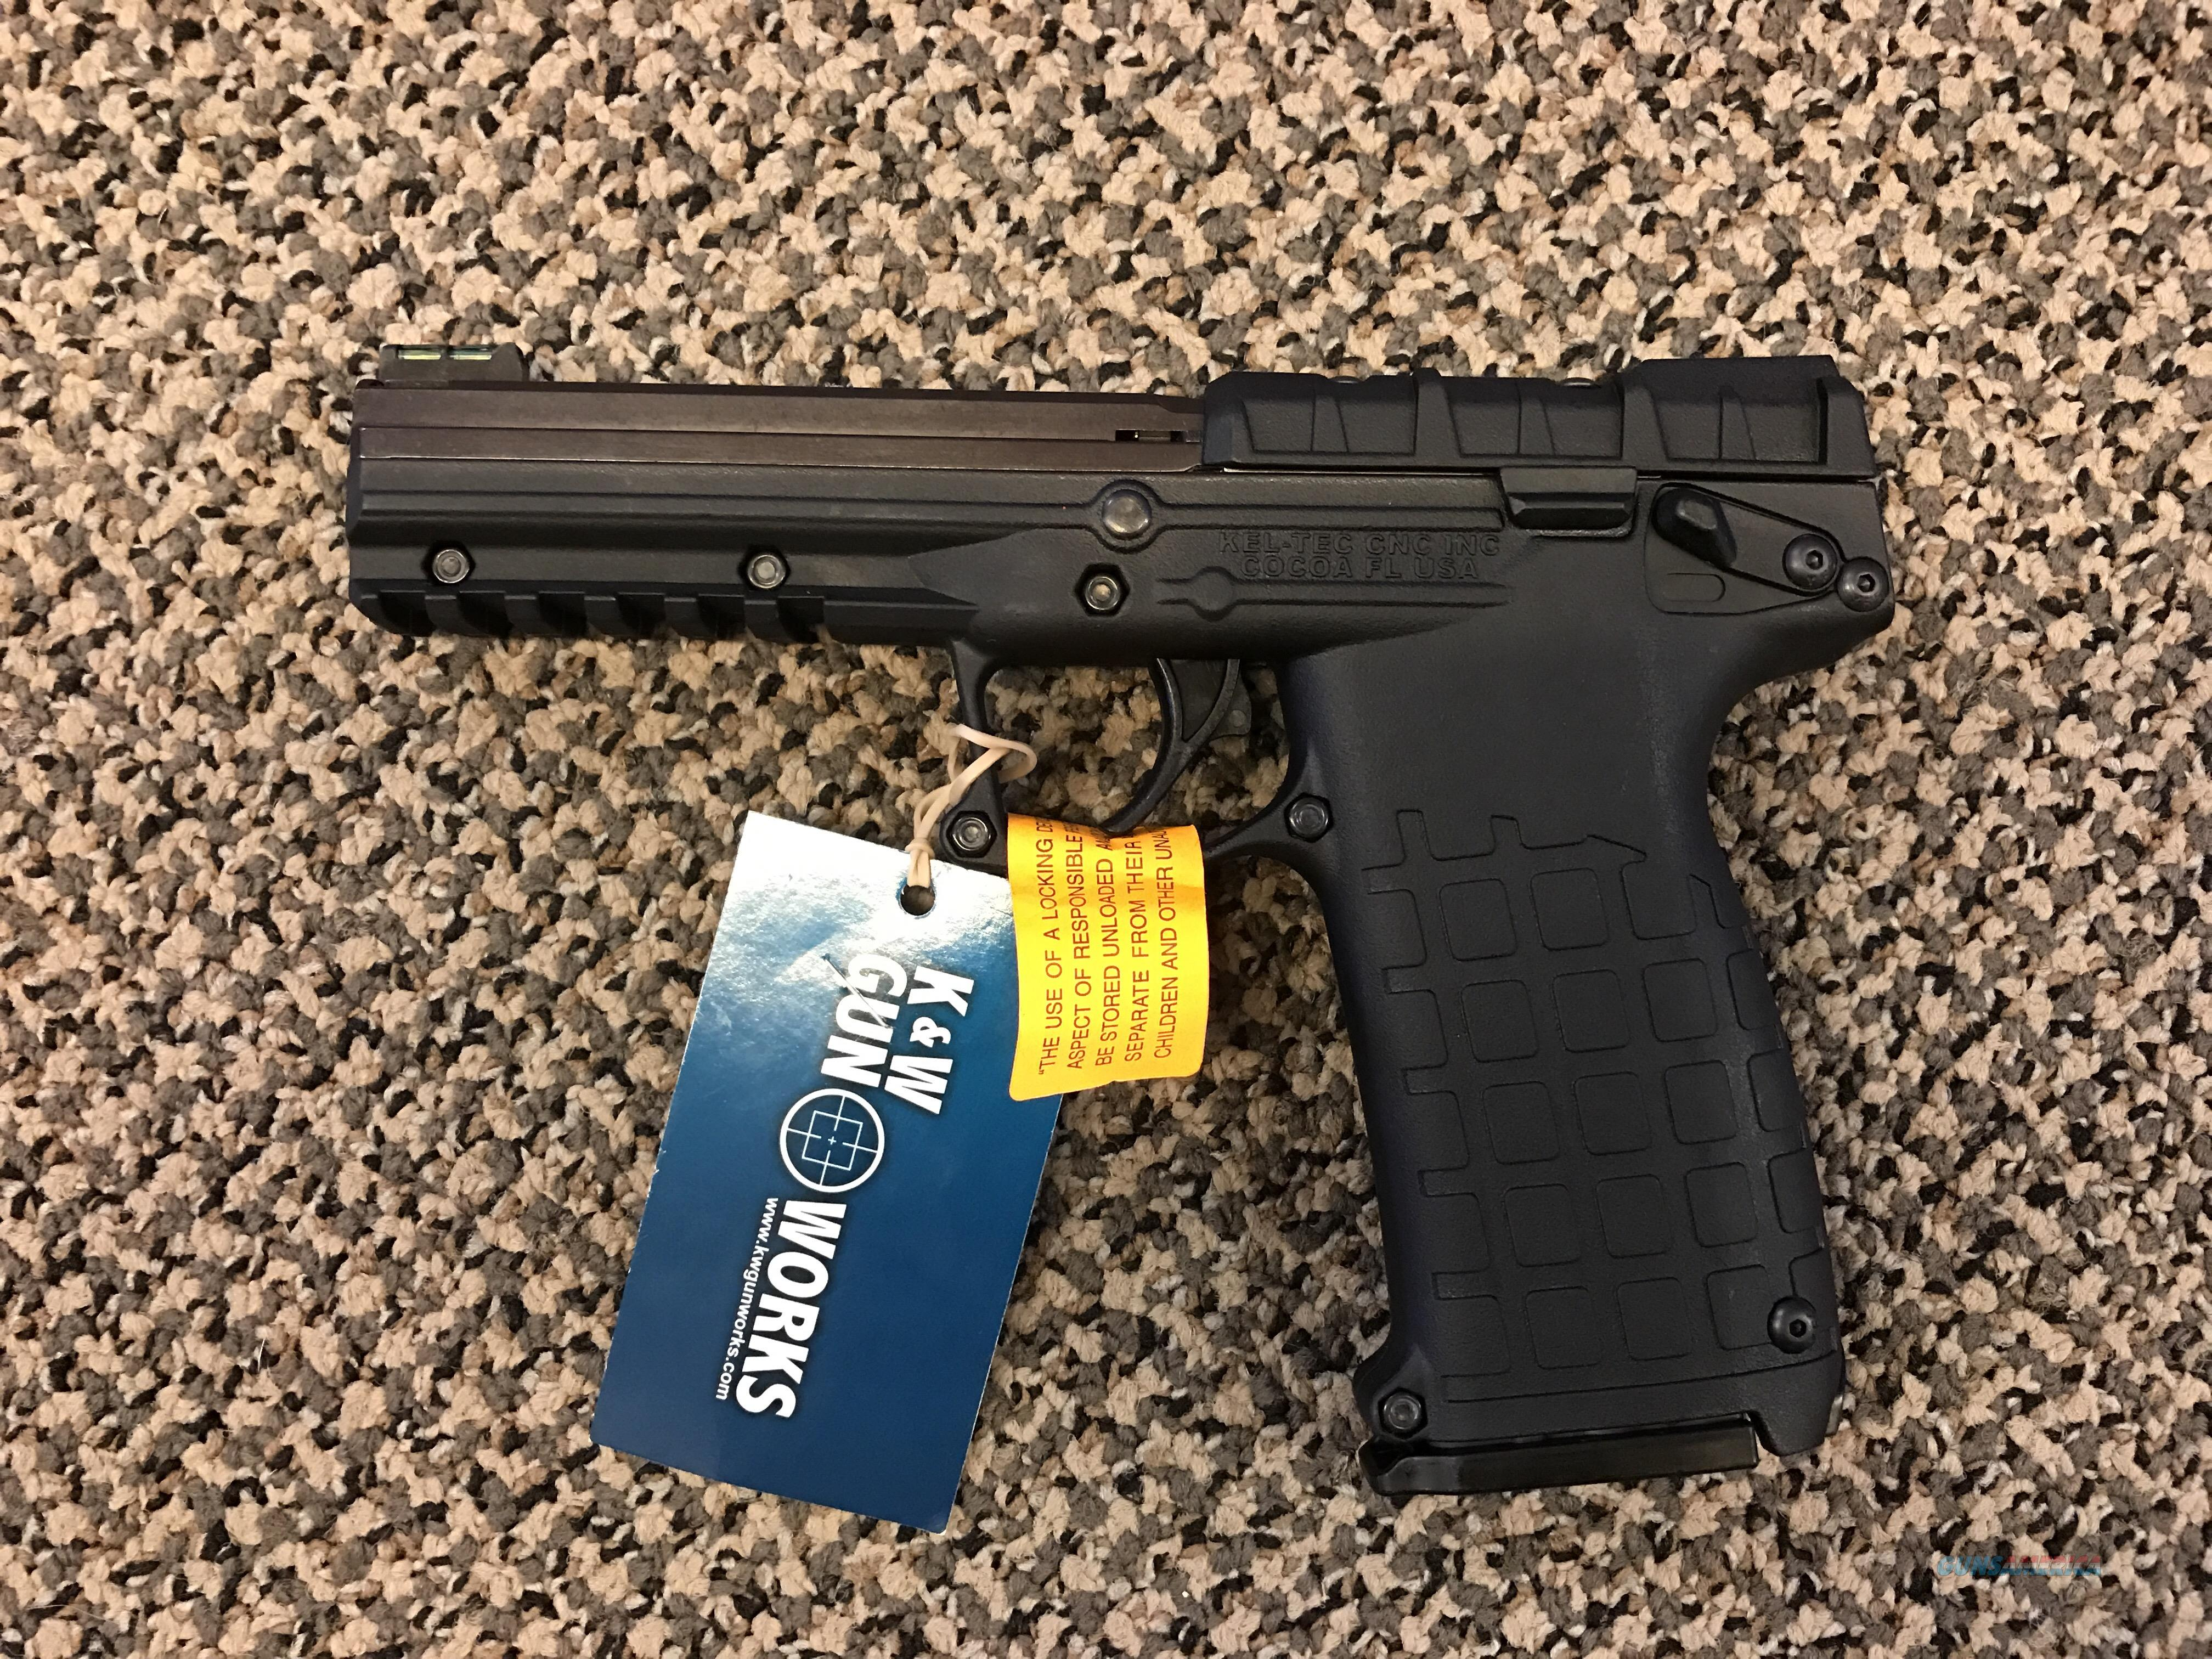 KEL-TEC PMR 30 BLACK .22 MAGNUM  NEW IN BOX  Guns > Pistols > Kel-Tec Pistols > .223 Type